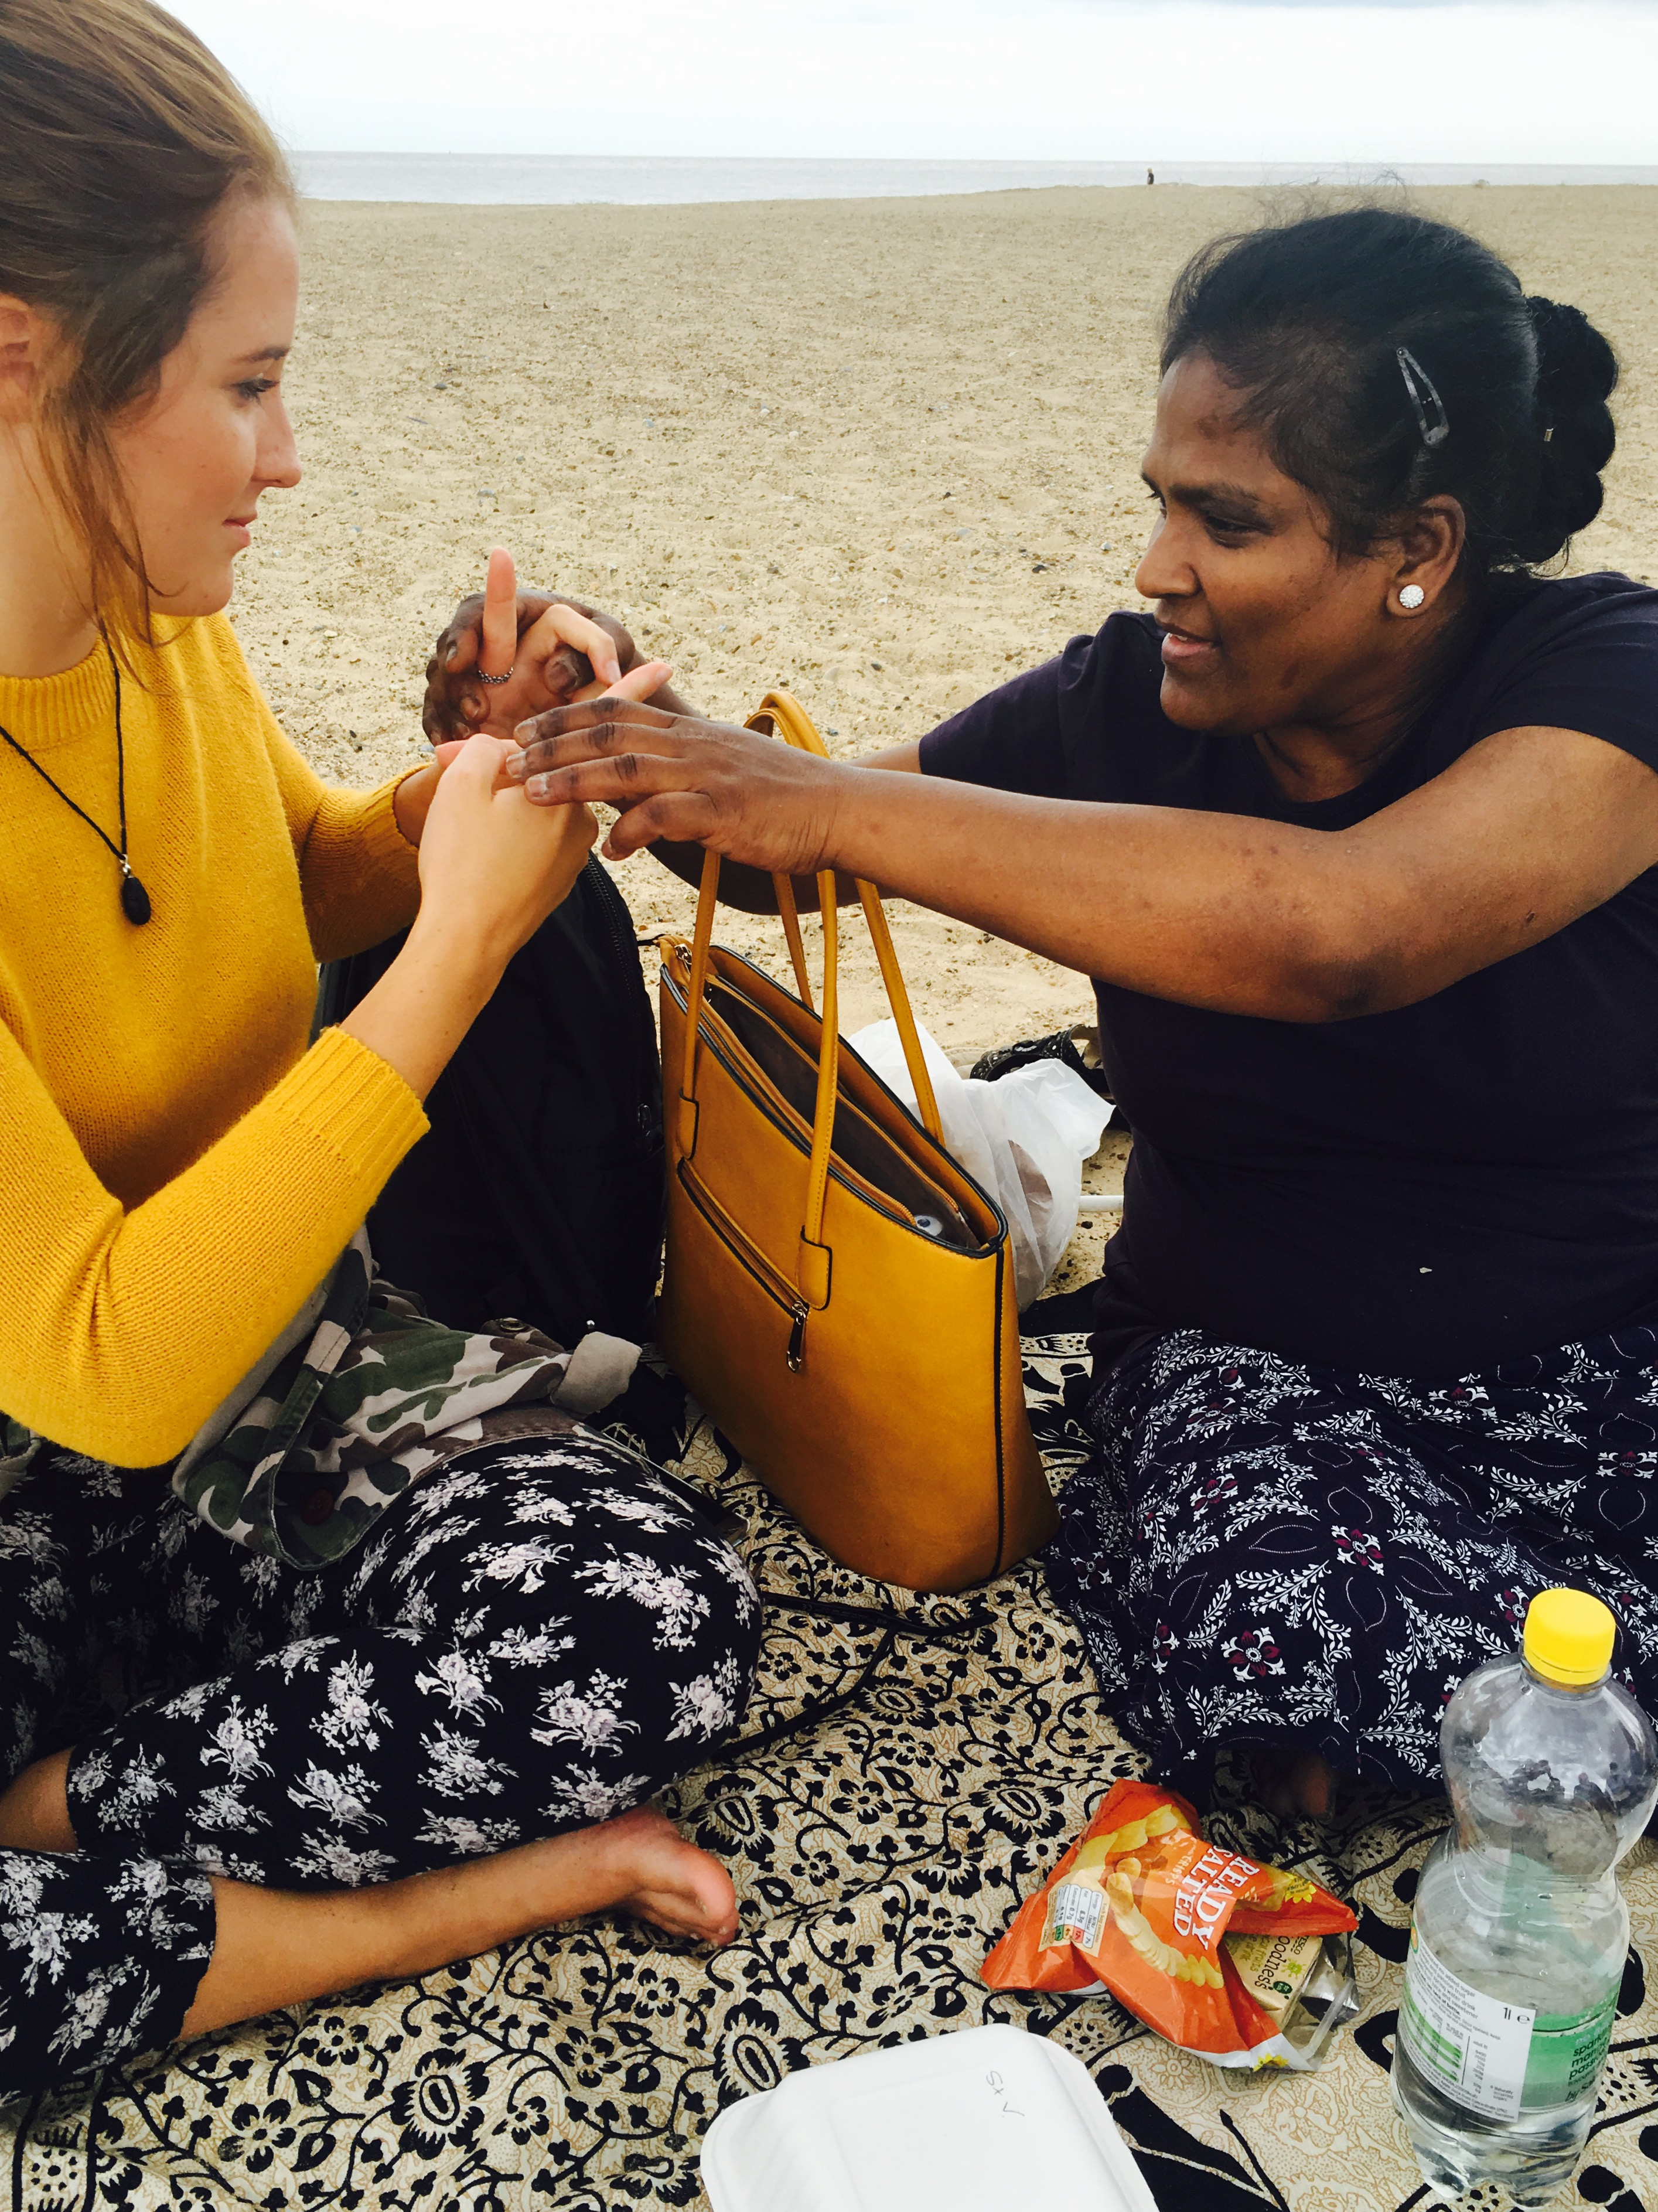 Two ladies sat facing each other with legs crossed on the beach, grasping each other's hands and smiling